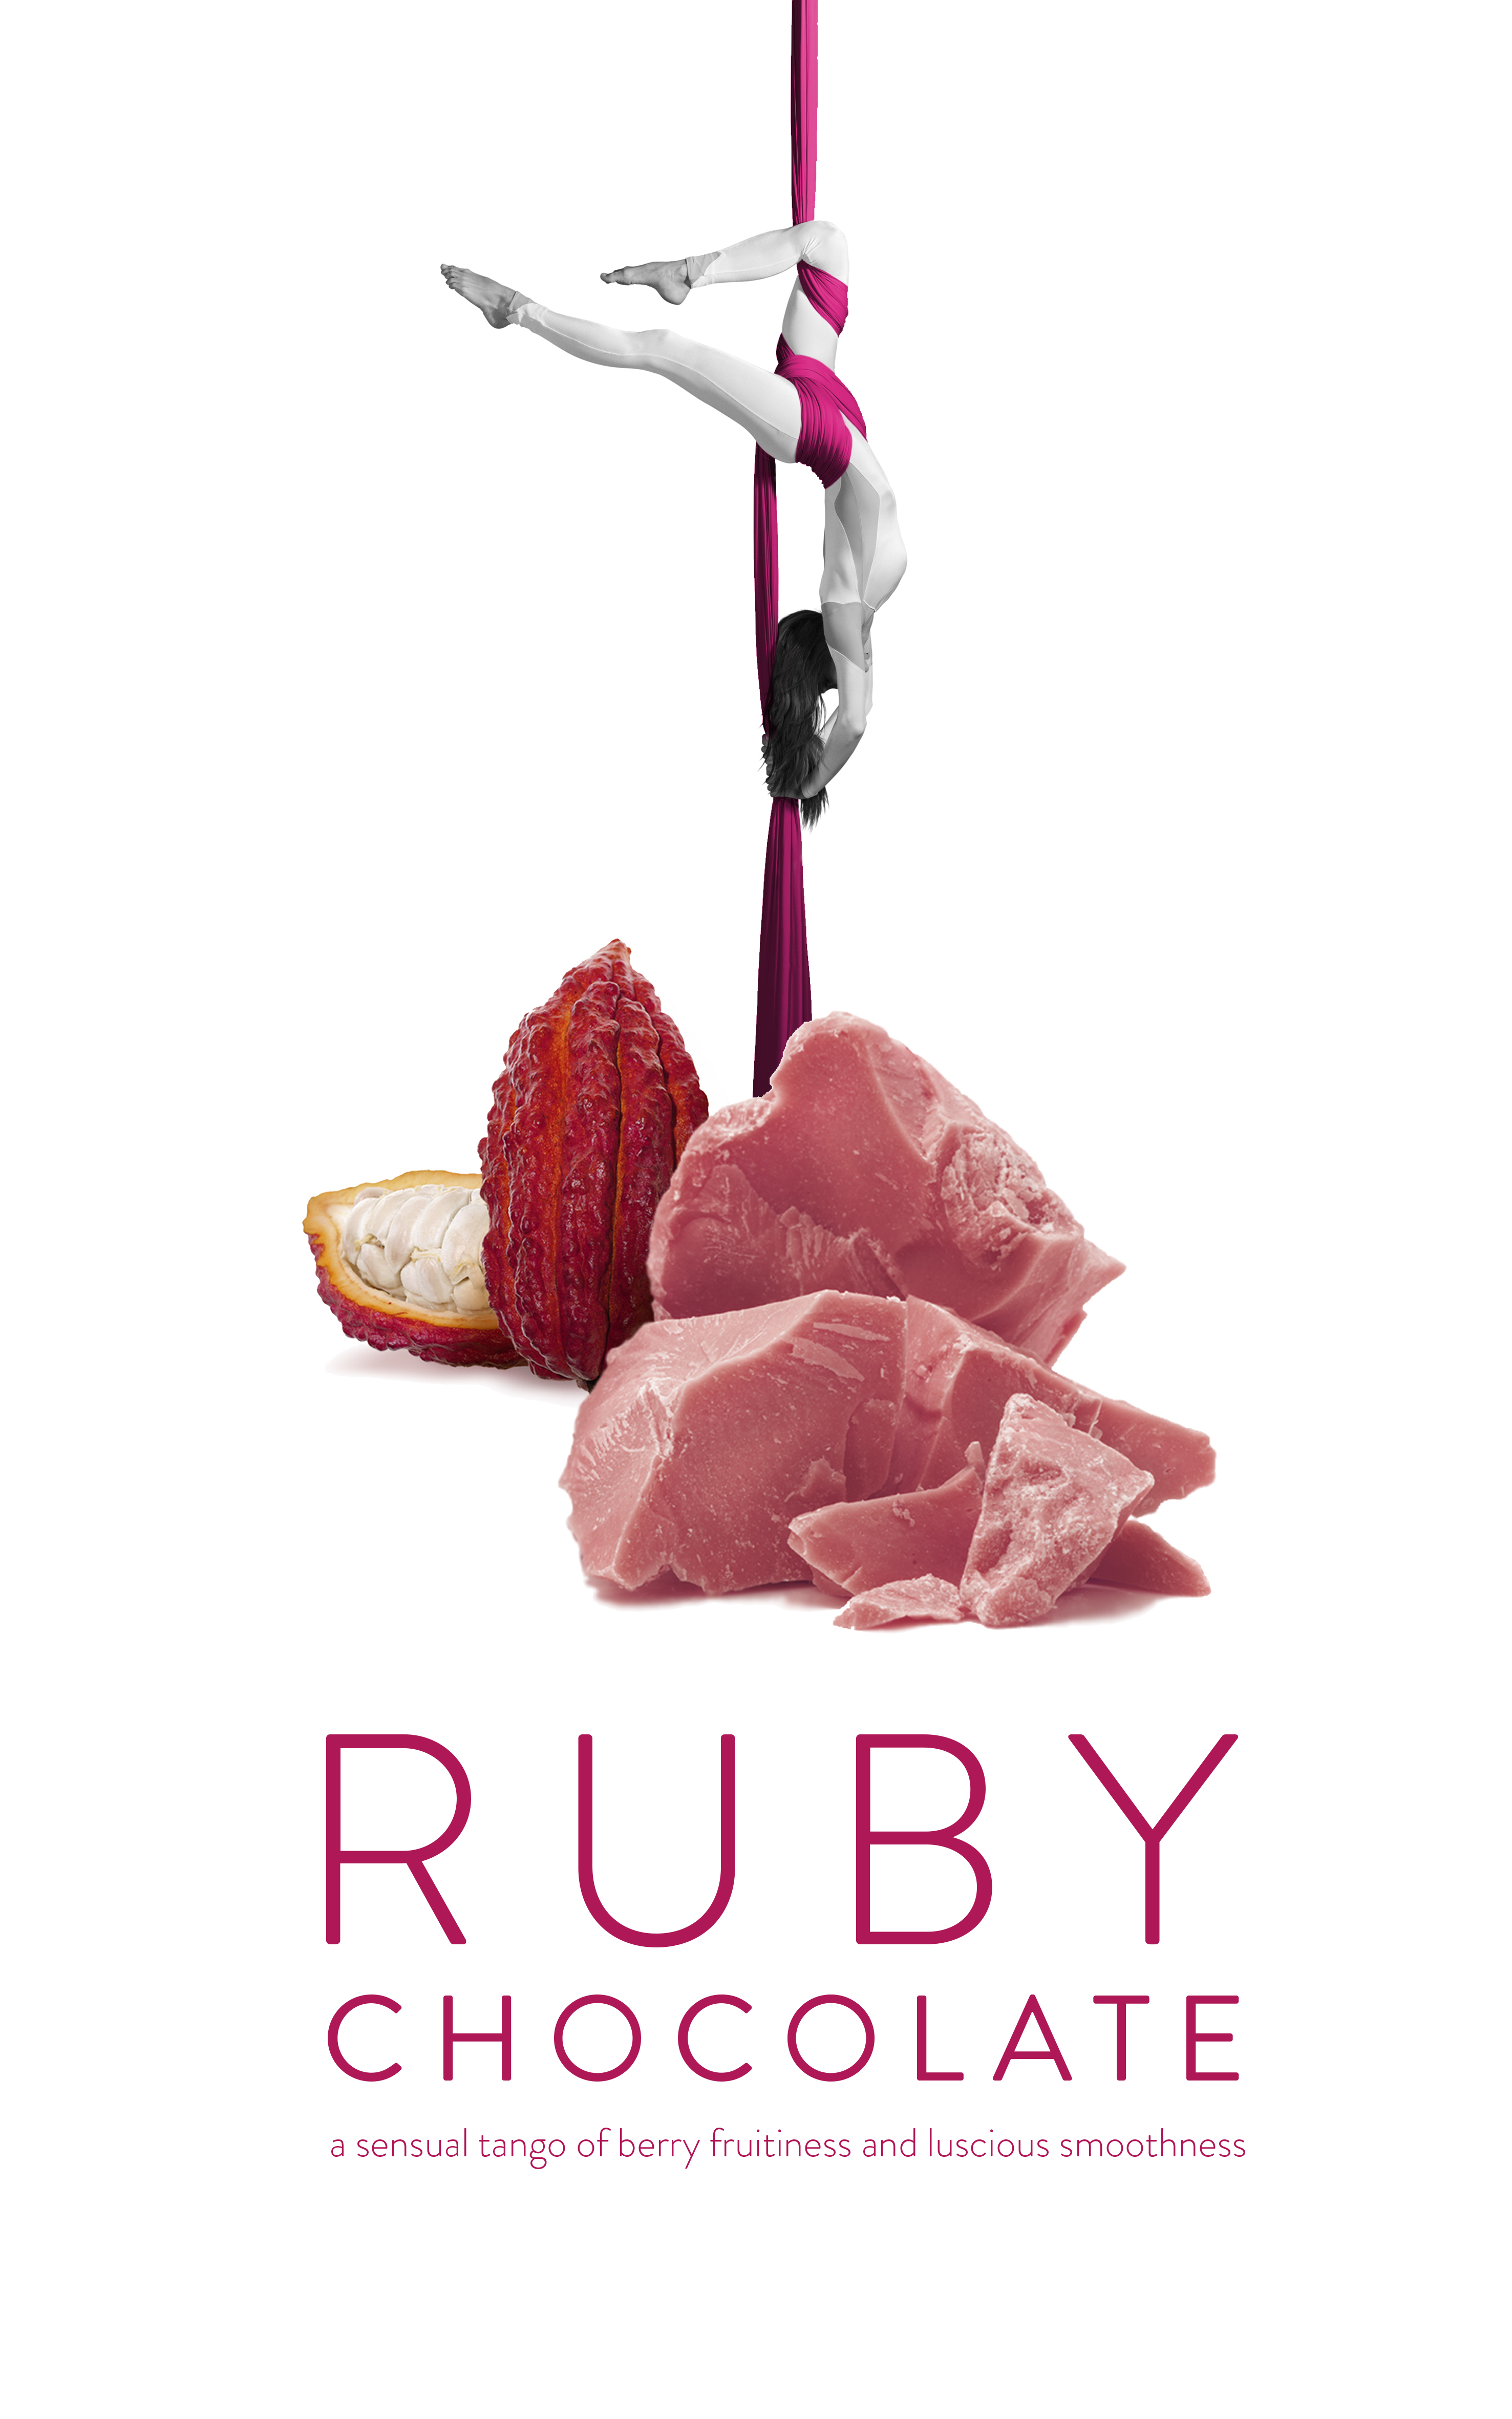 Ruby_Chocolate_Official_Image_01